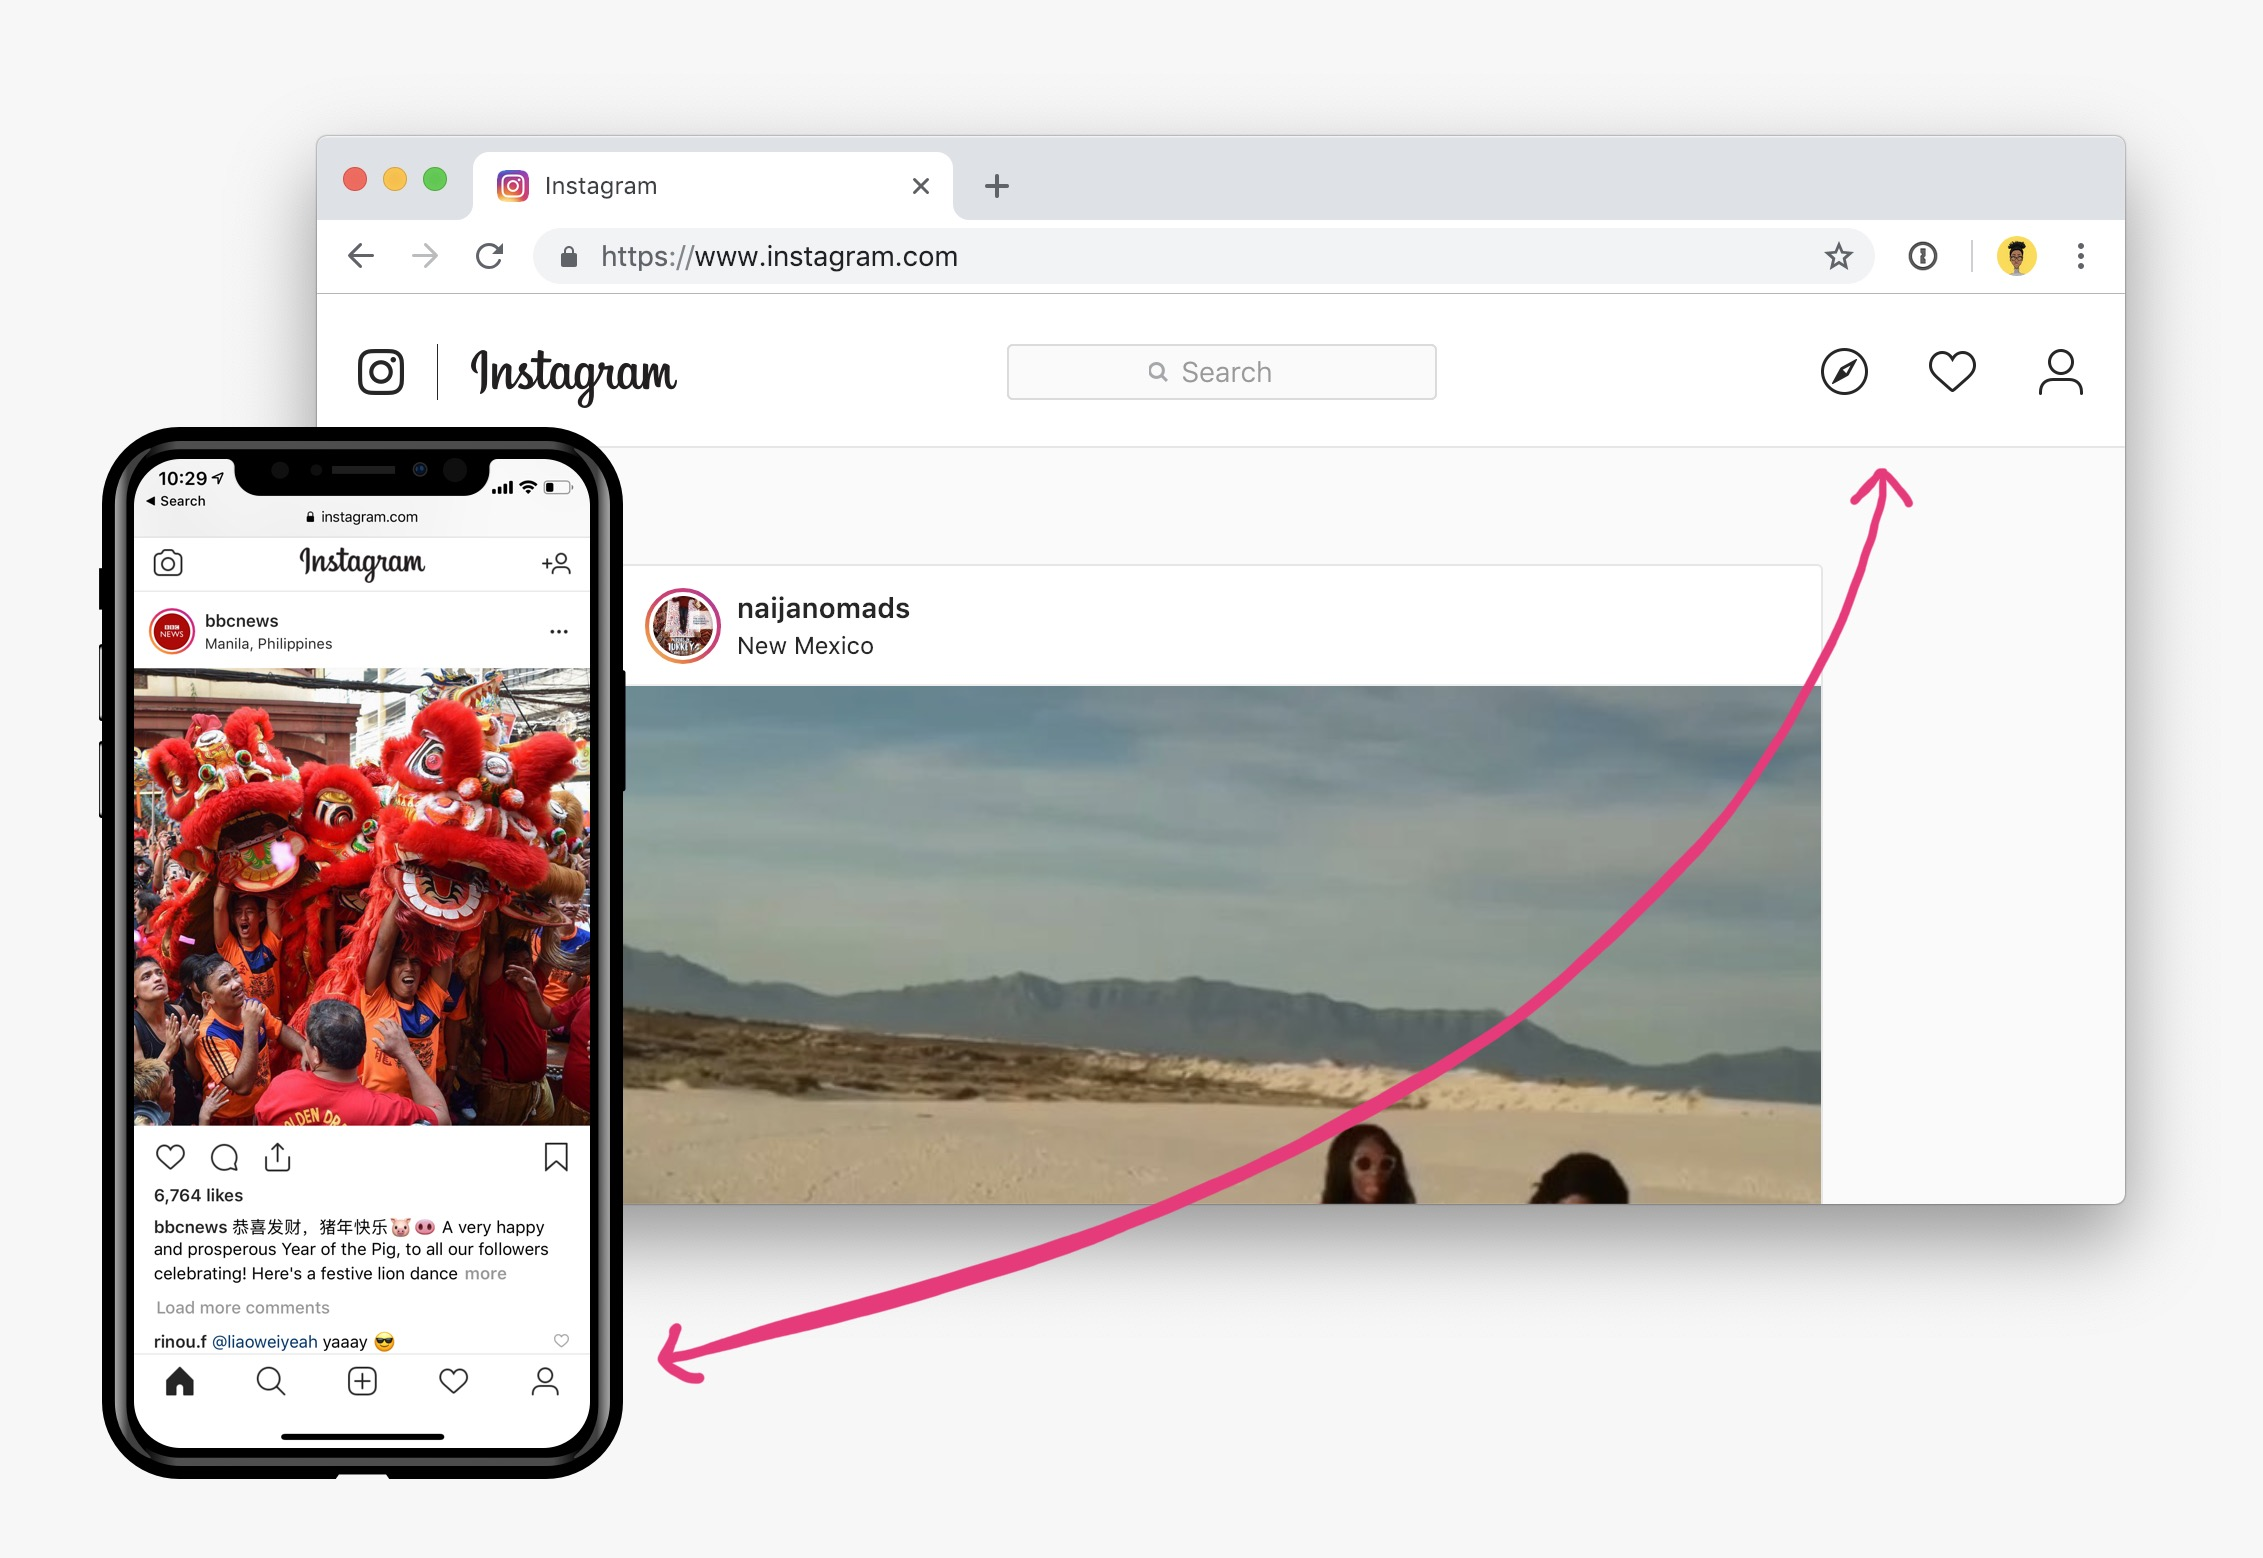 Navigation on instagram on desktop compared to mobile